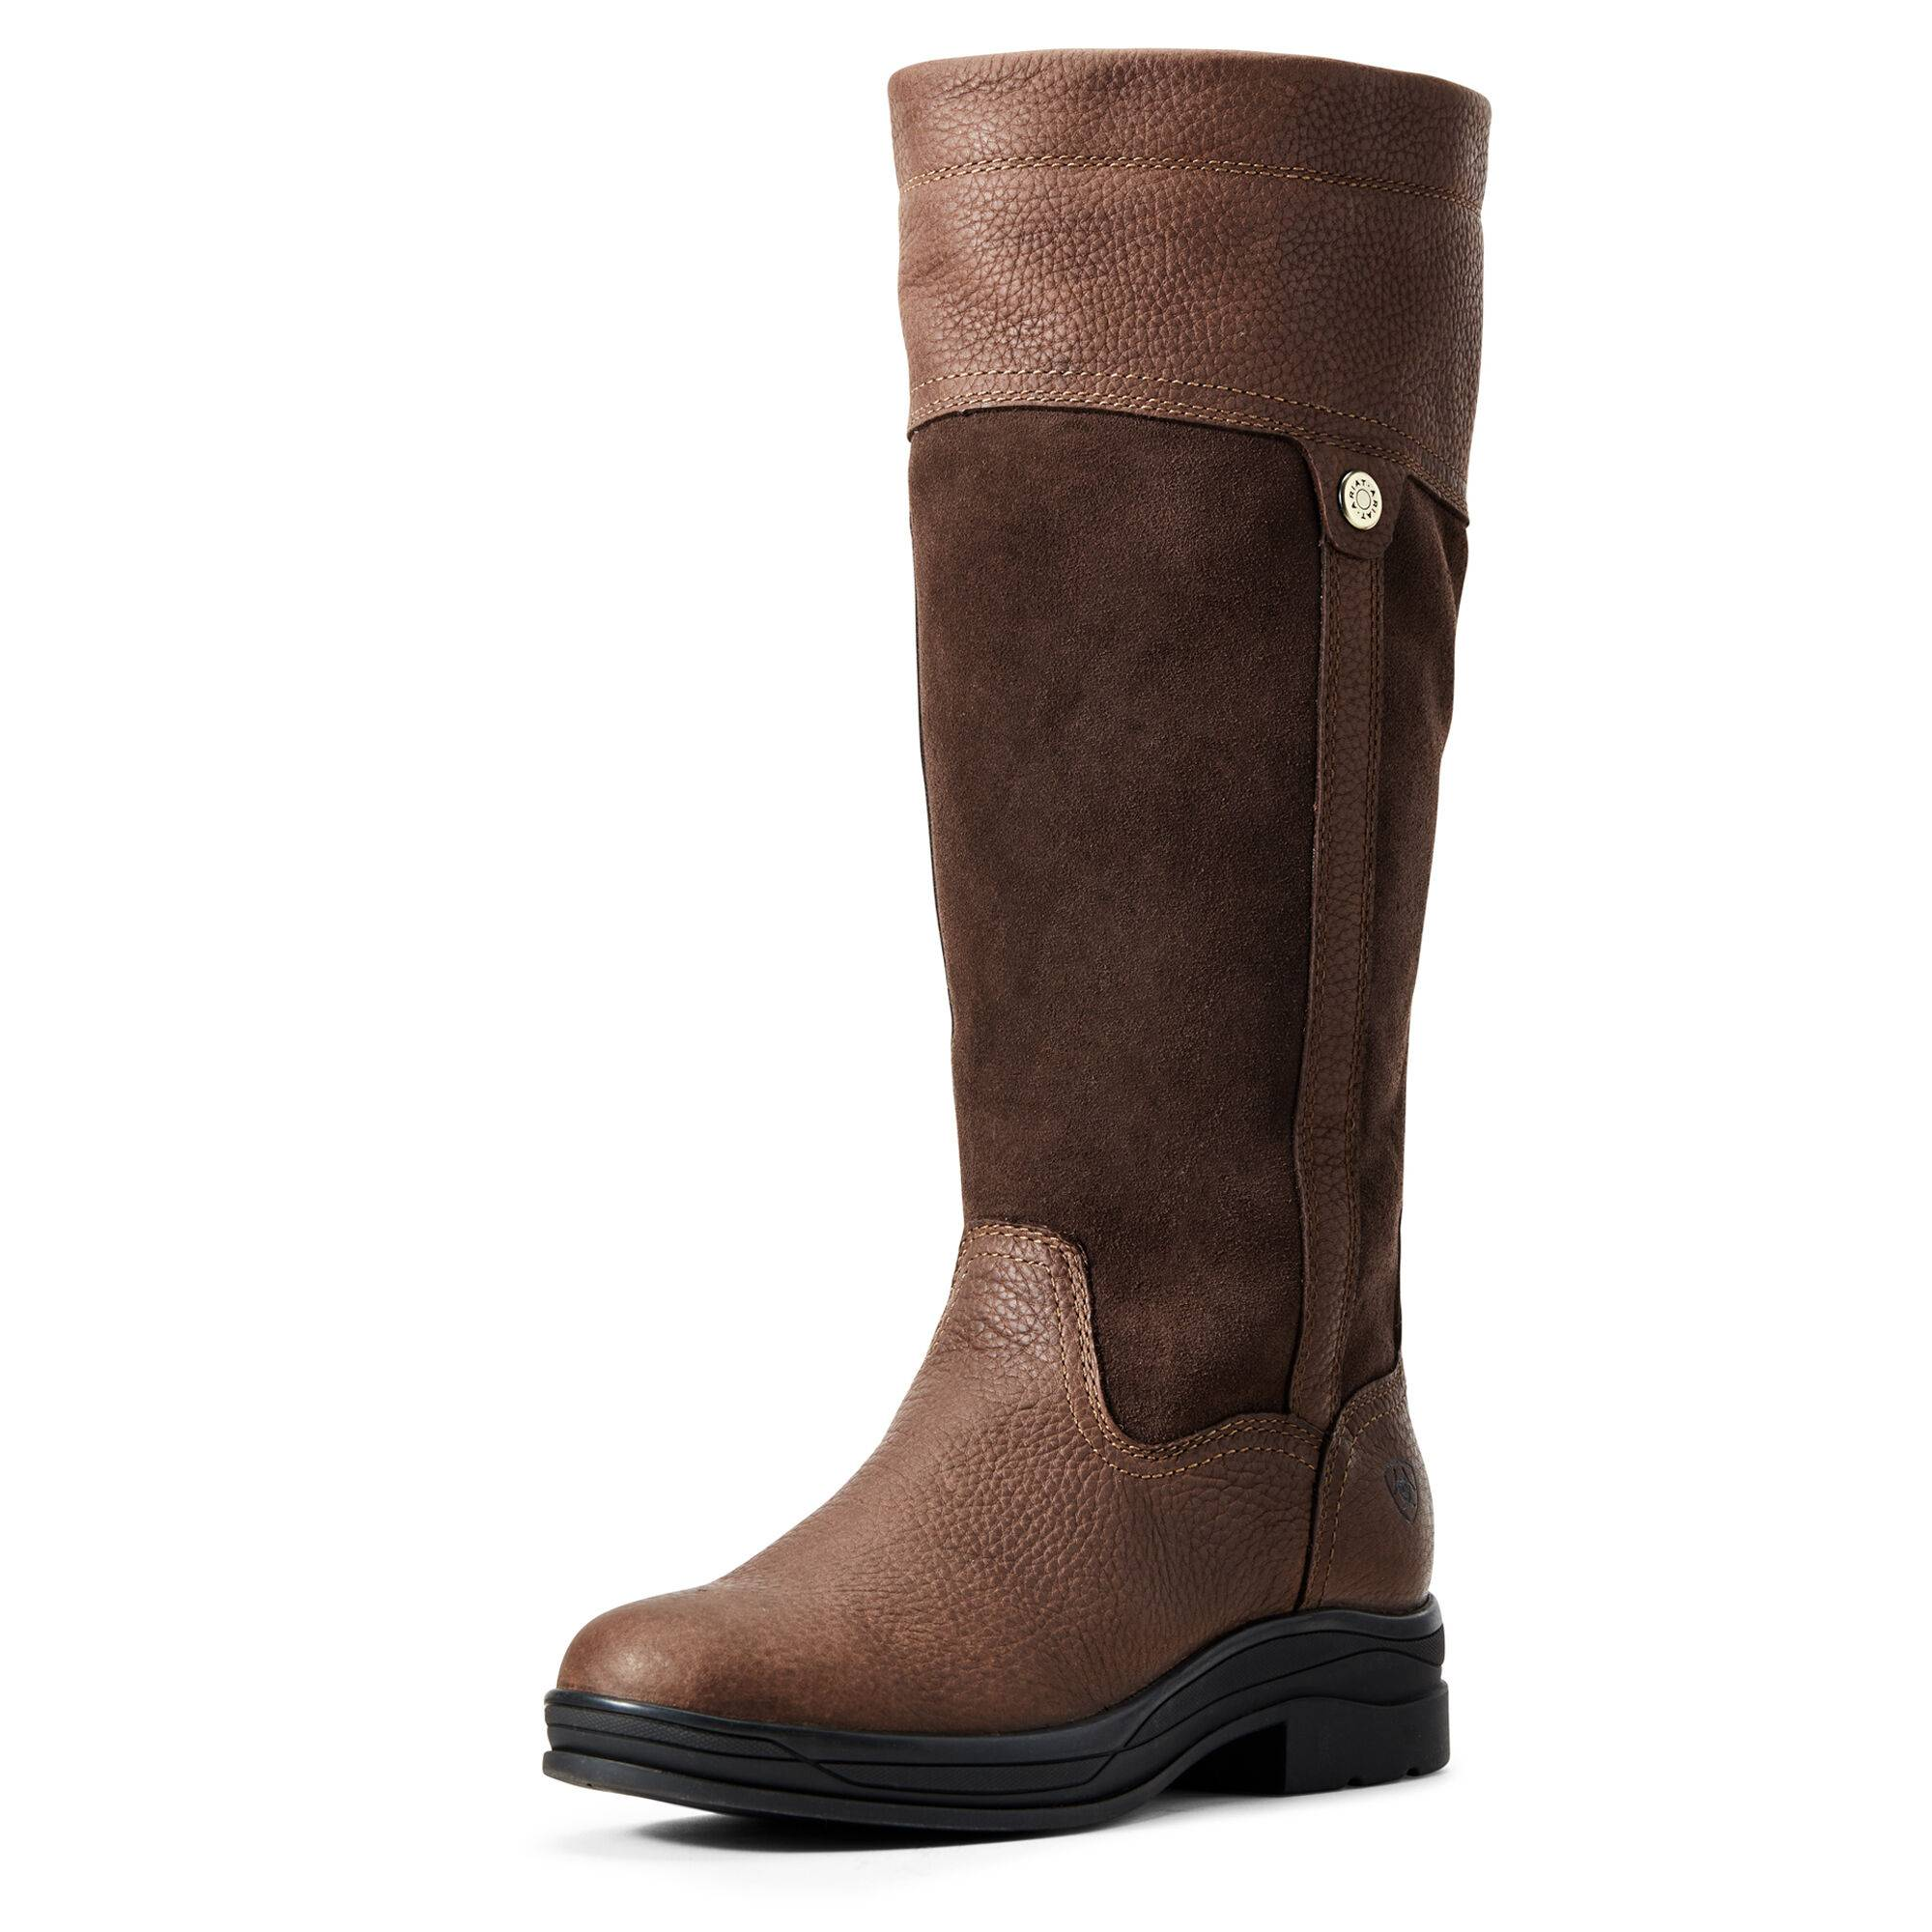 Ariat Women's Windermere II Waterproof Boots in Brown Leather, Size 6.5 by Ariat